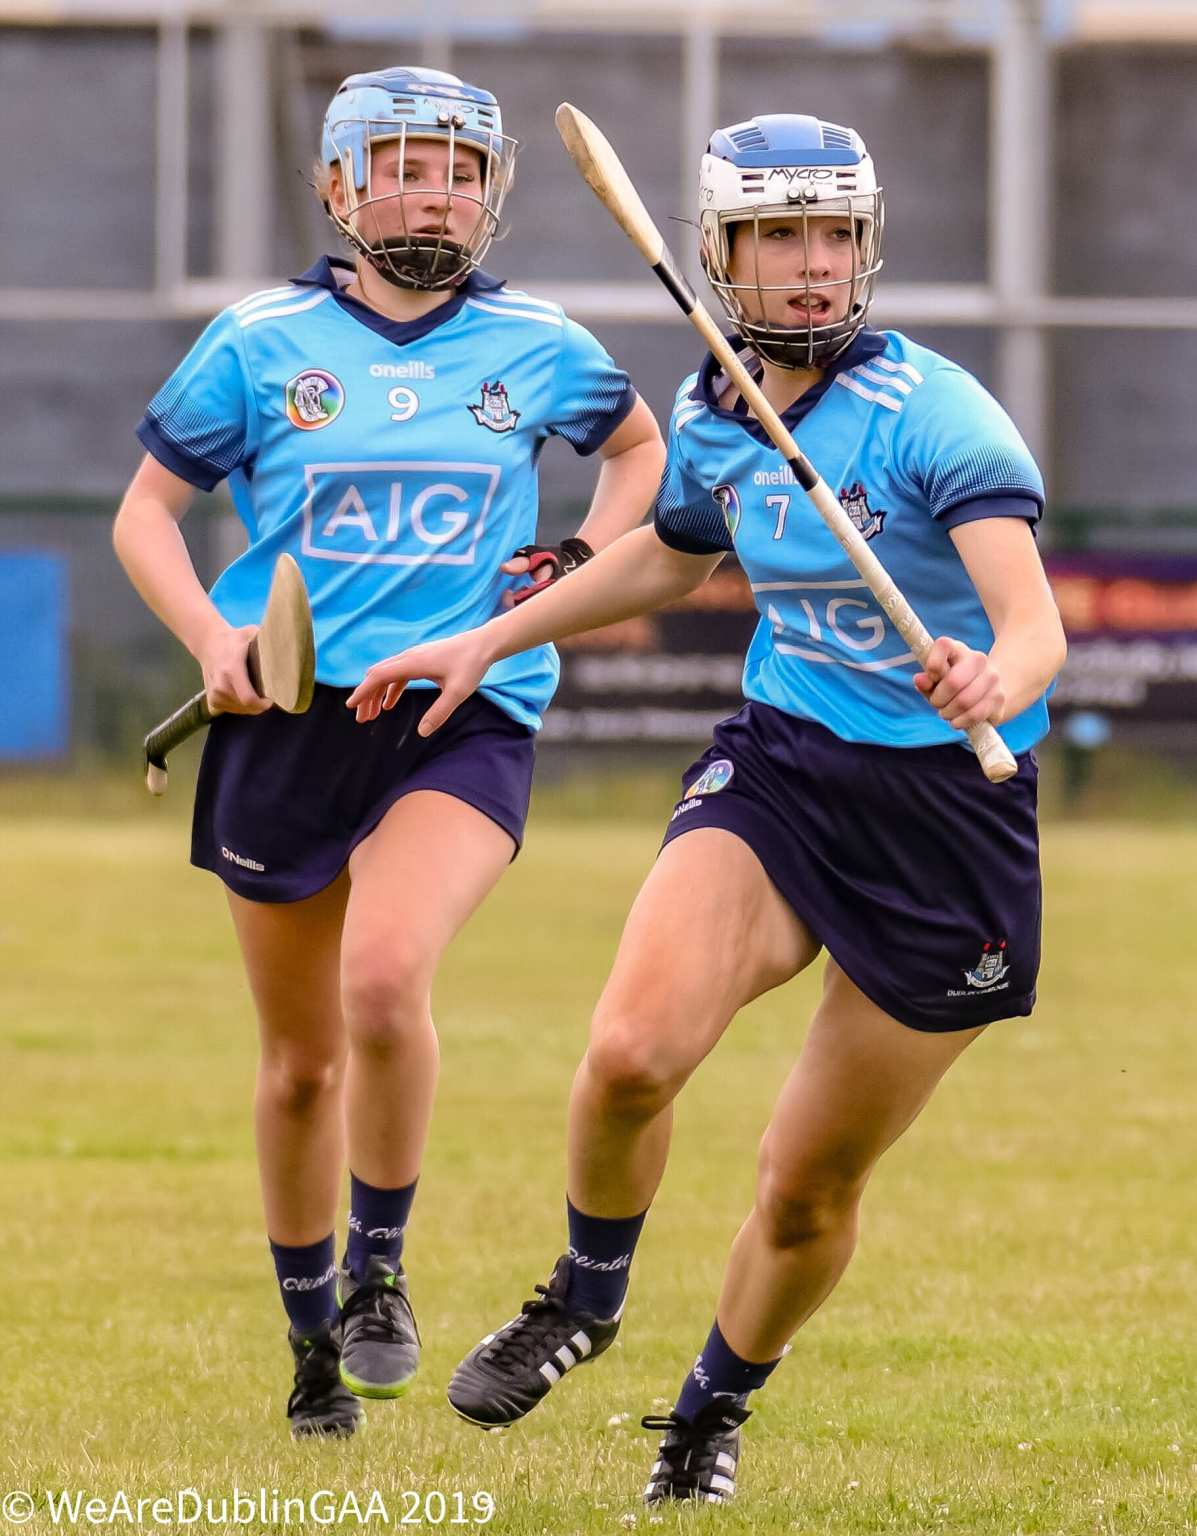 Two members of the Dublin Camogie Intermediates in action against Kildare in the All Ireland Championship.